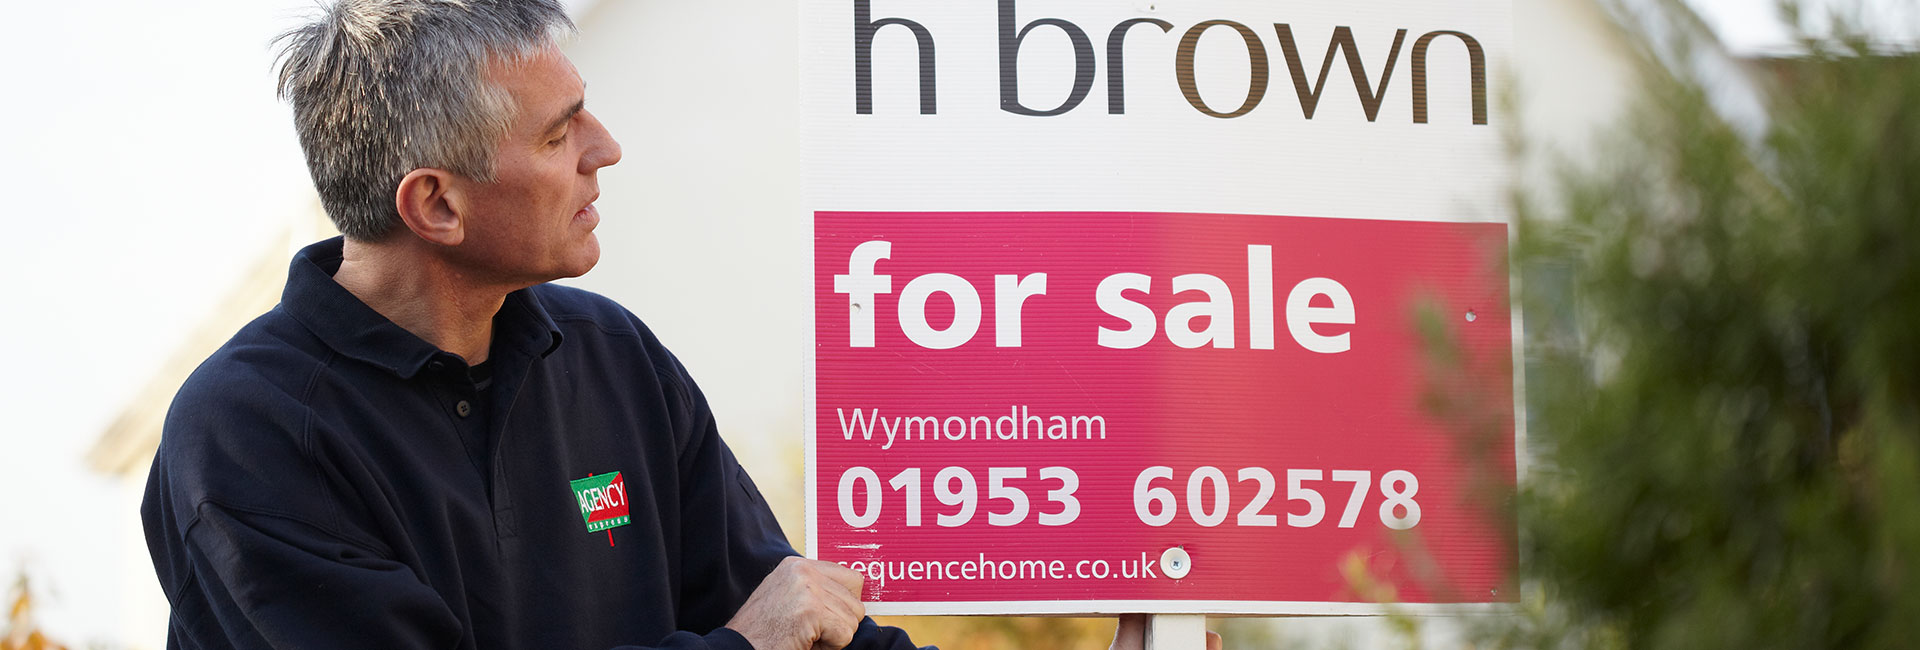 Estate Agency board erector with William H Brown estate agency board. - UK property market